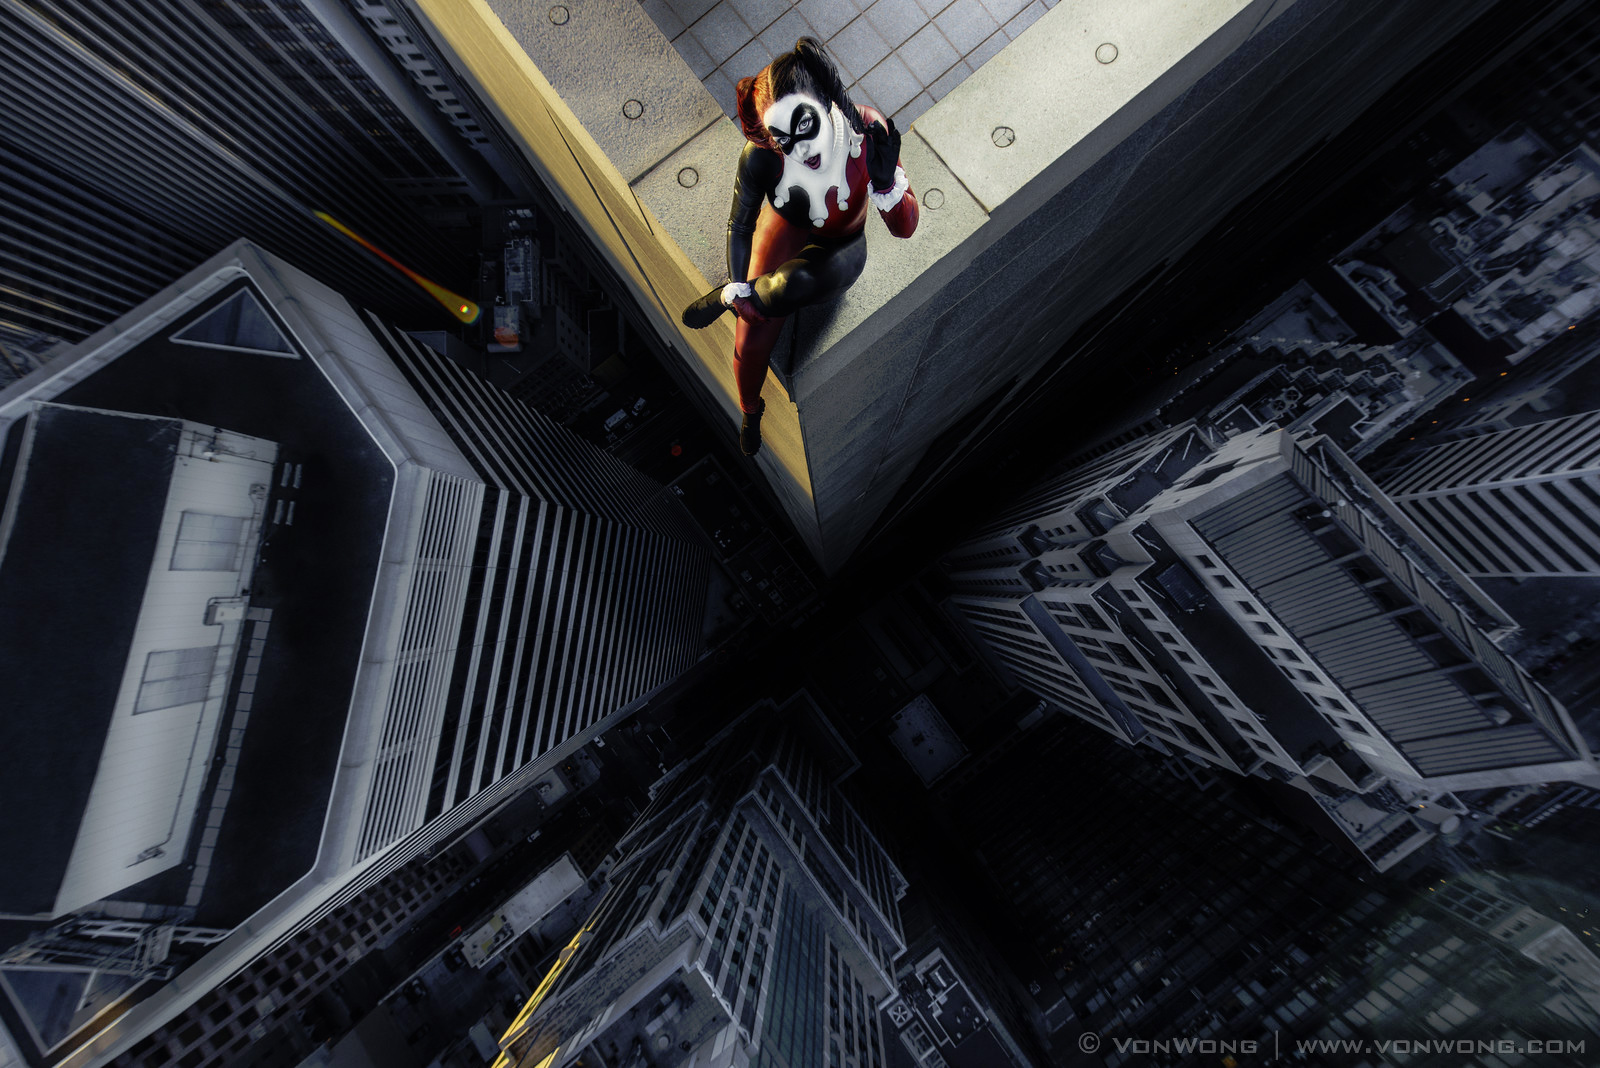 Superheroes-On-The-Edge-Of-A-Skyscraper